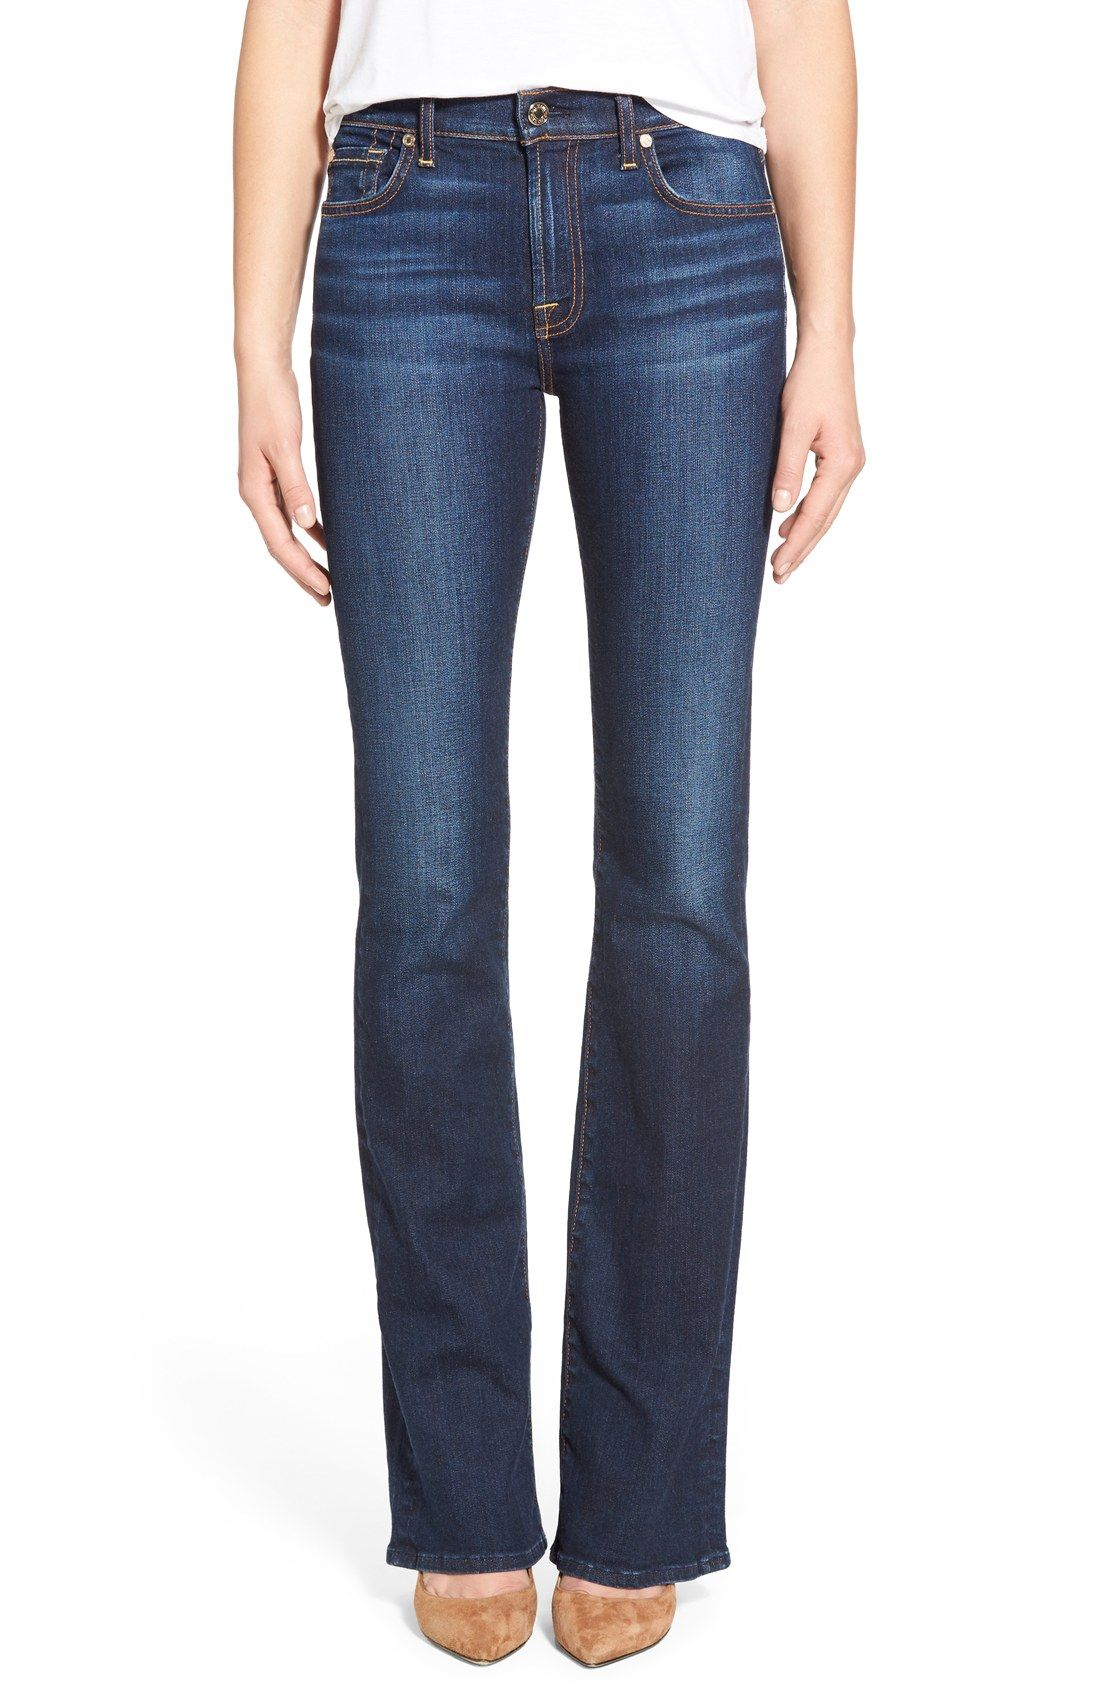 New yorker bootcut jeans